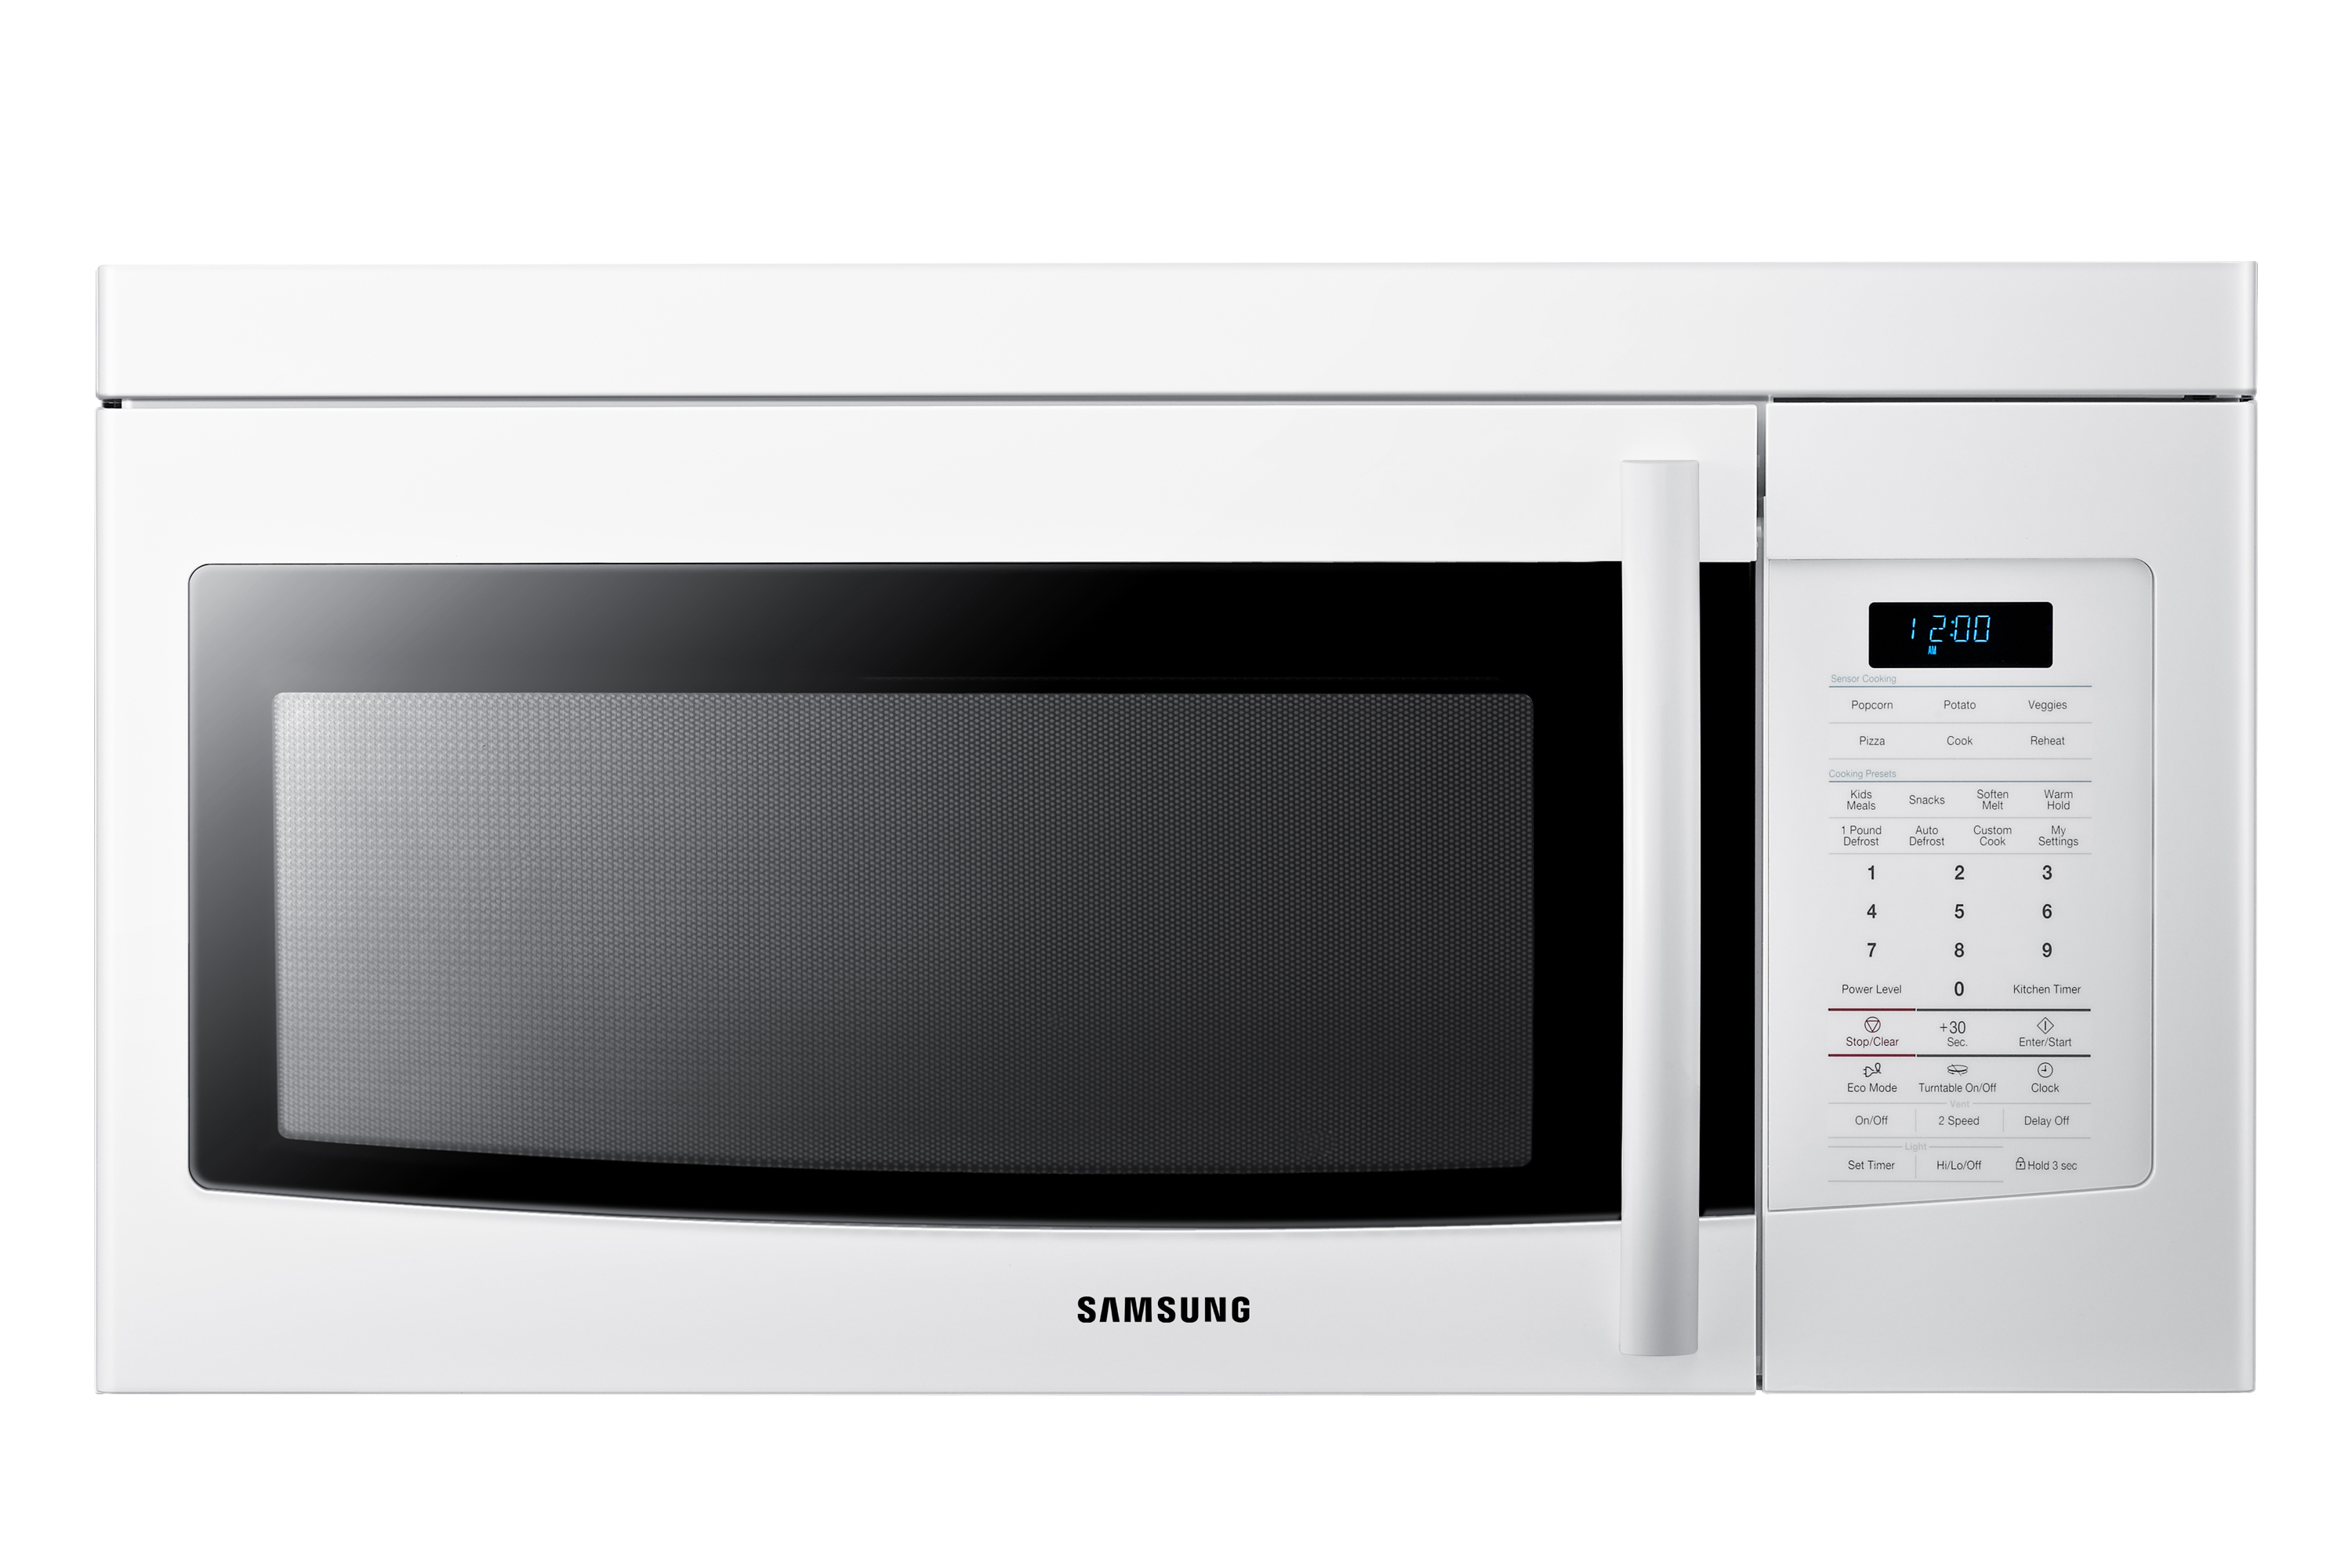 SMH1713W 1.7 cu. ft. Over the Range Microwave White